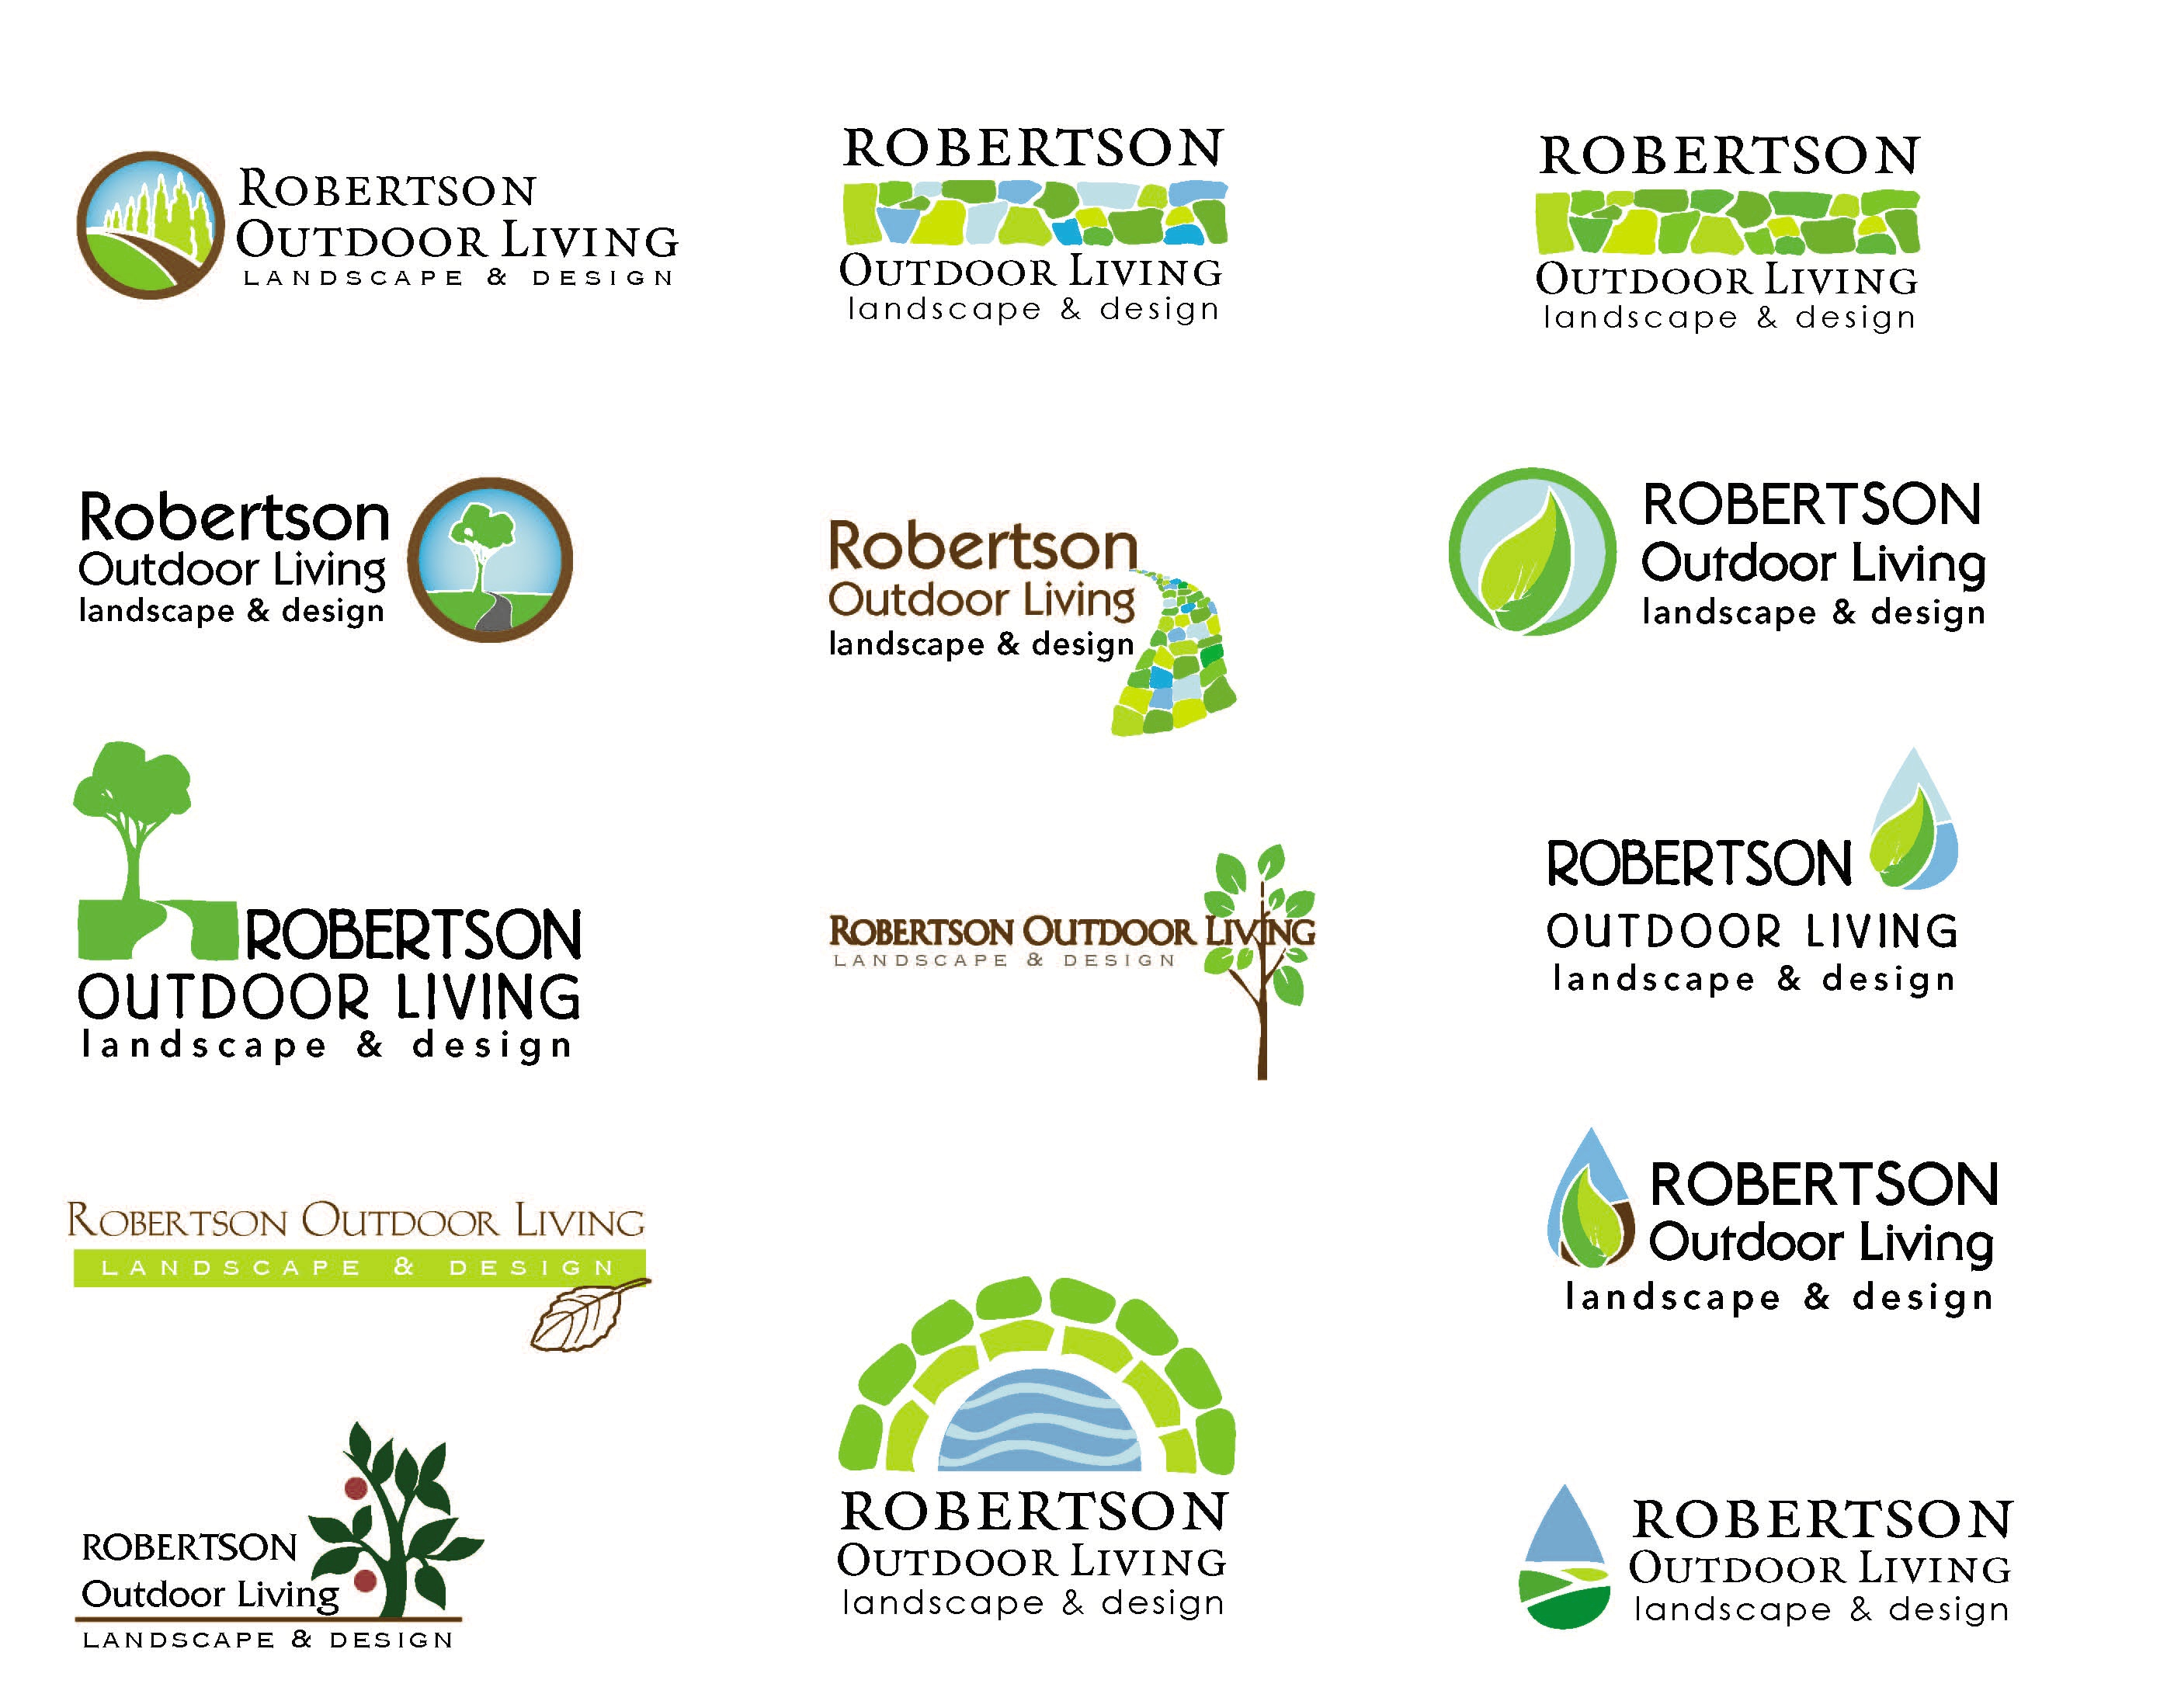 Robertson Landscaping Logos The Client Was Starting An Upscale Landscape Architecture Business And Needed A Logo